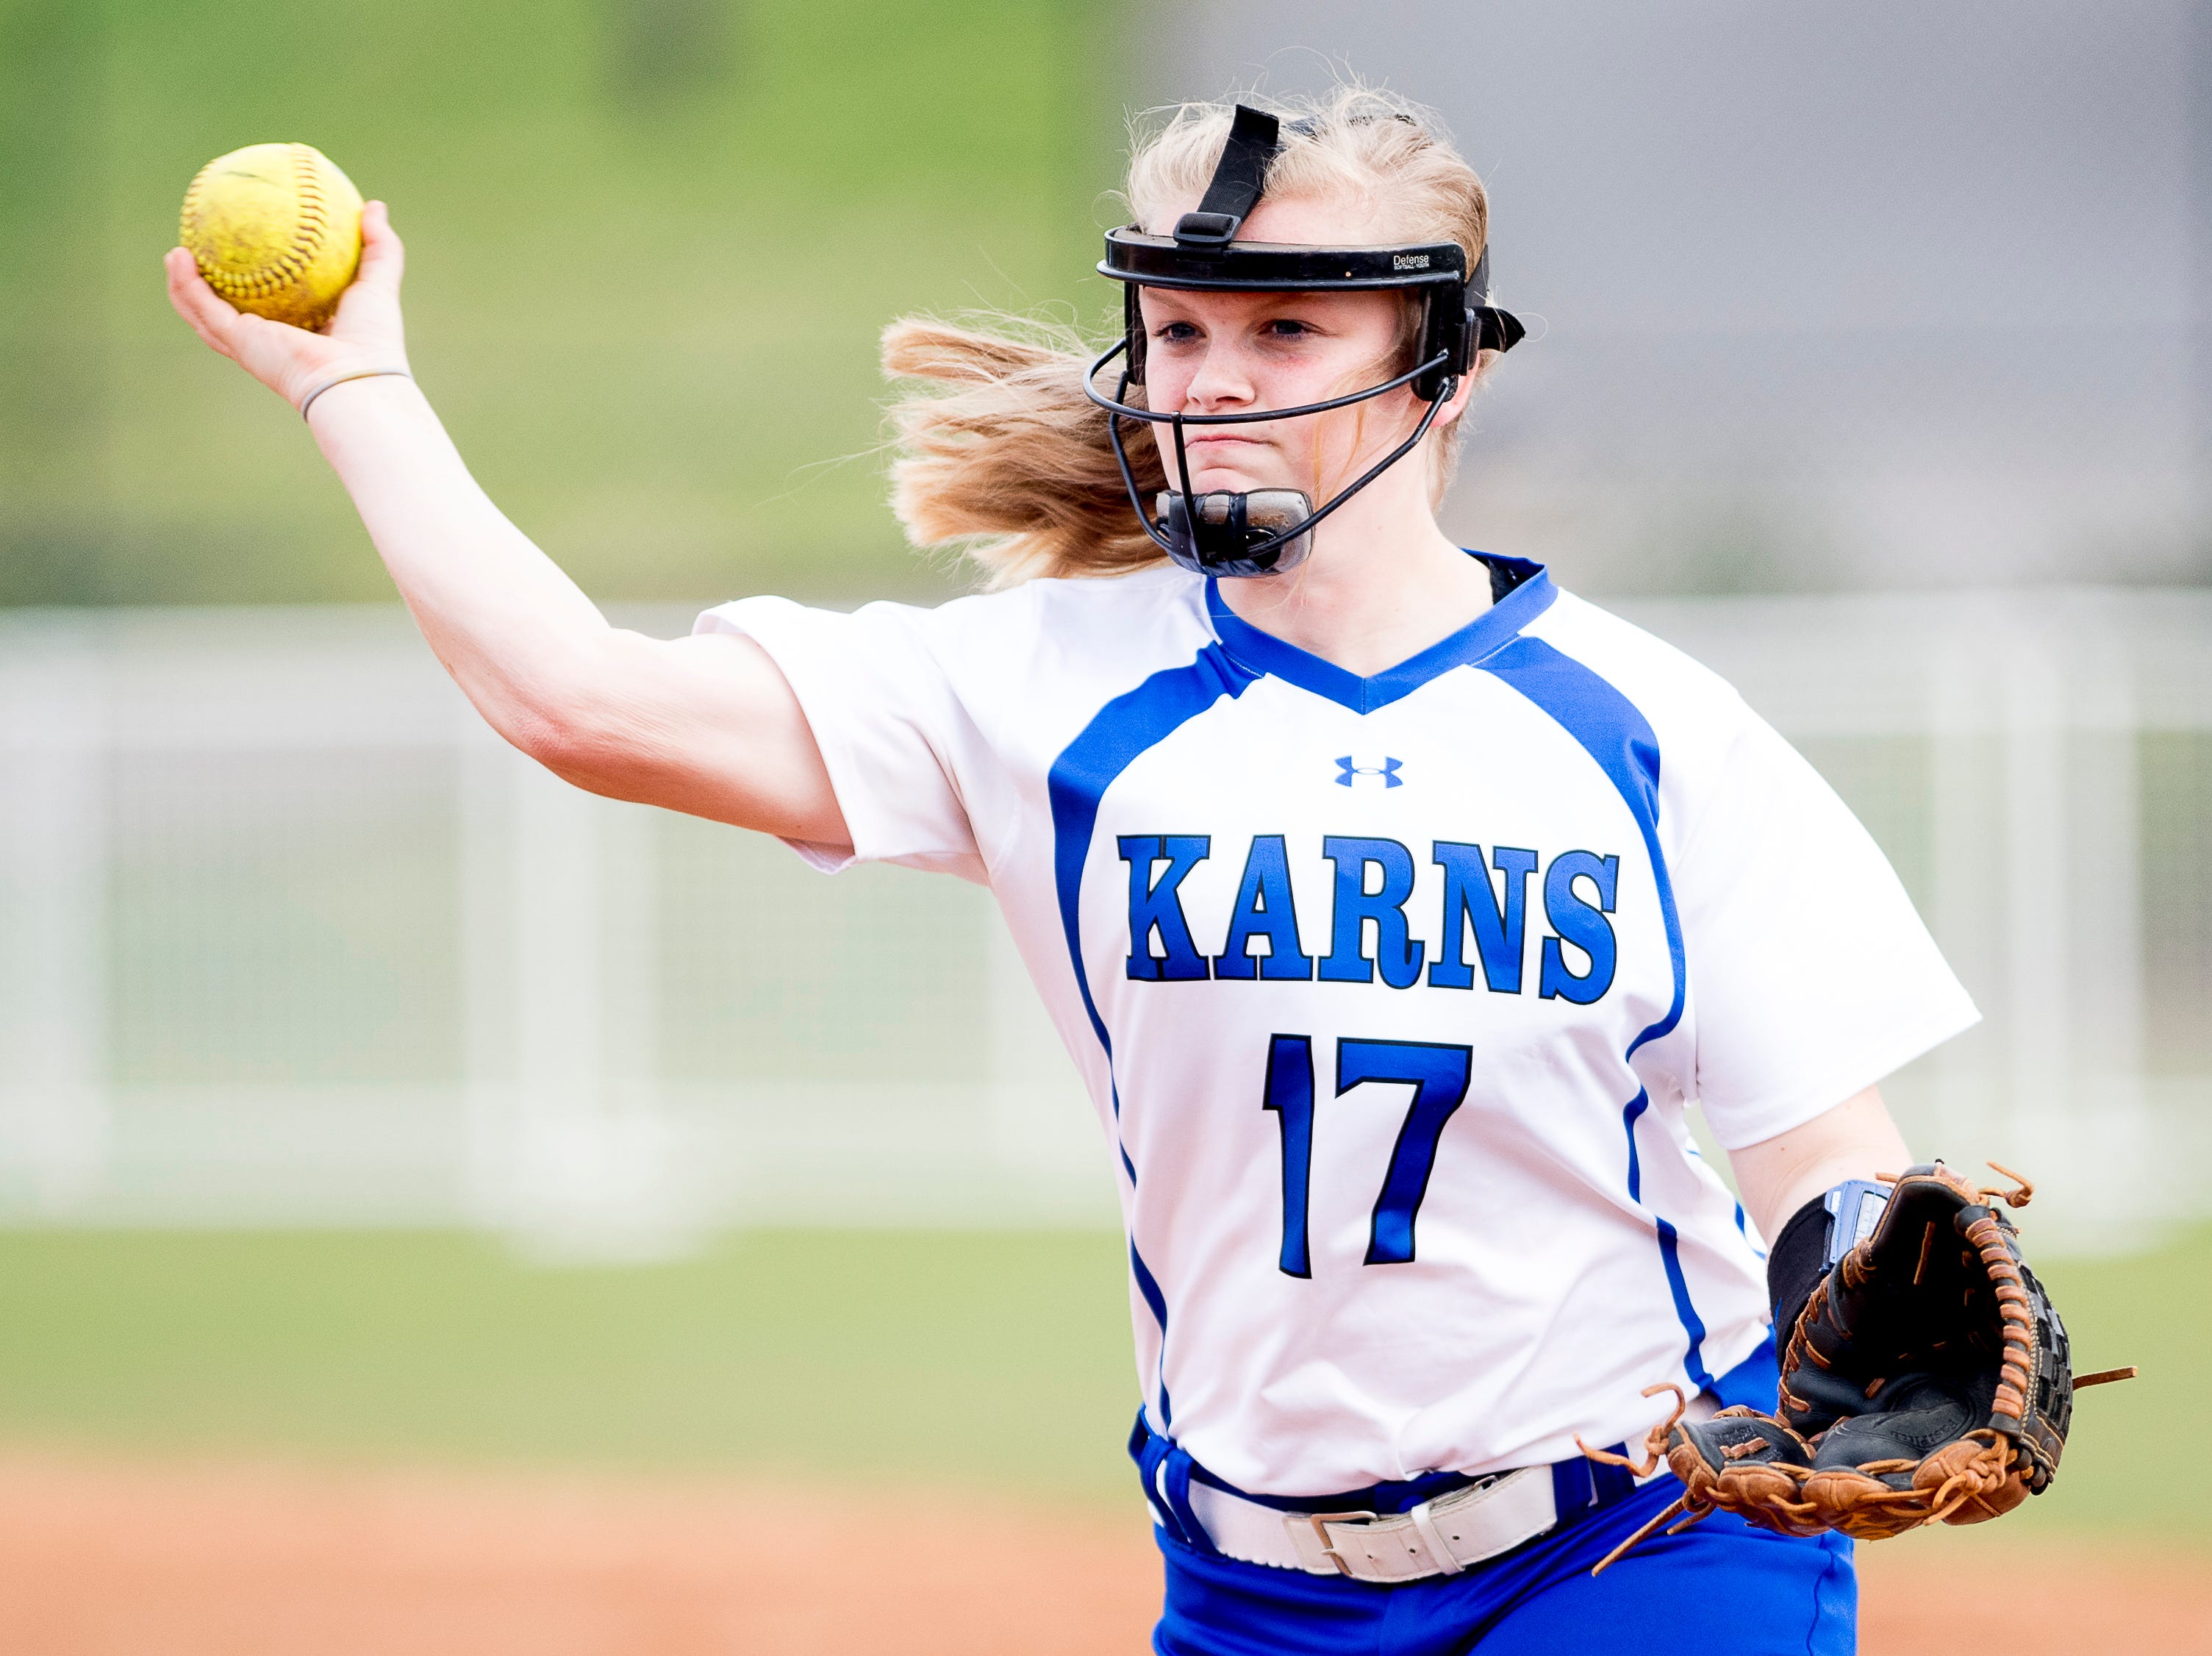 Karns' Kelcie Jade Grubb (17) throws the ball during a softball game between Catholic and Karns at Caswell Park in Knoxville, Tennessee on Friday, April 12, 2019.